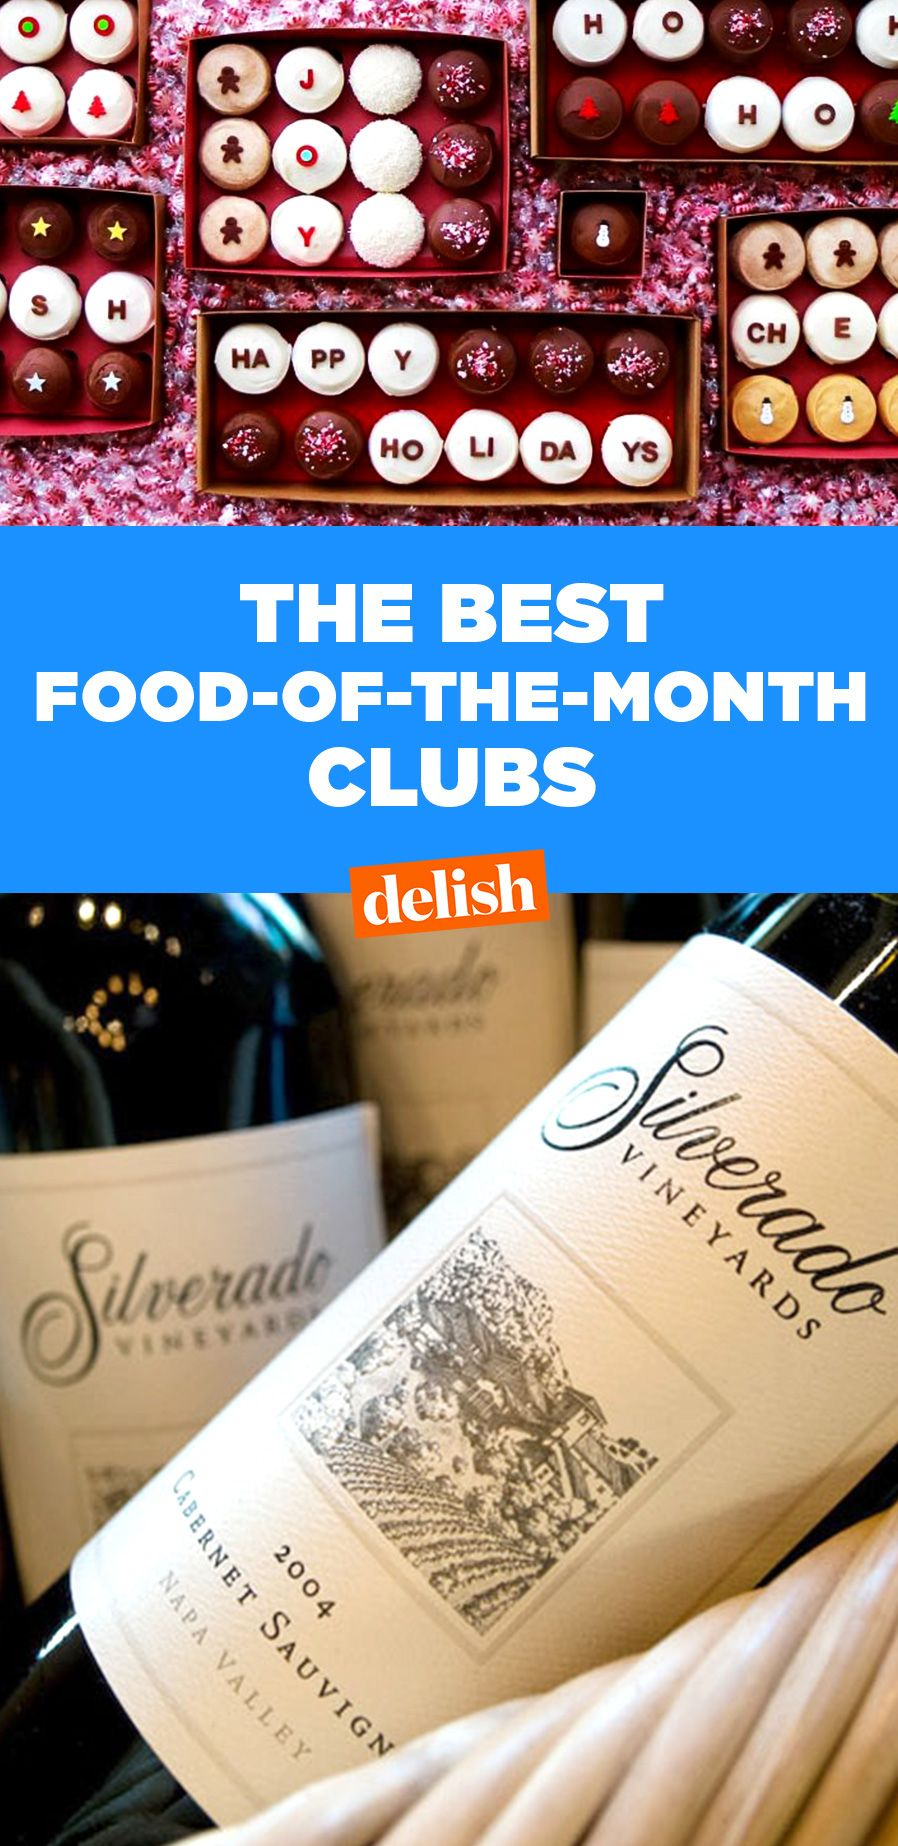 20 Best Food of the Month Clubs - Monthly Subscription Box